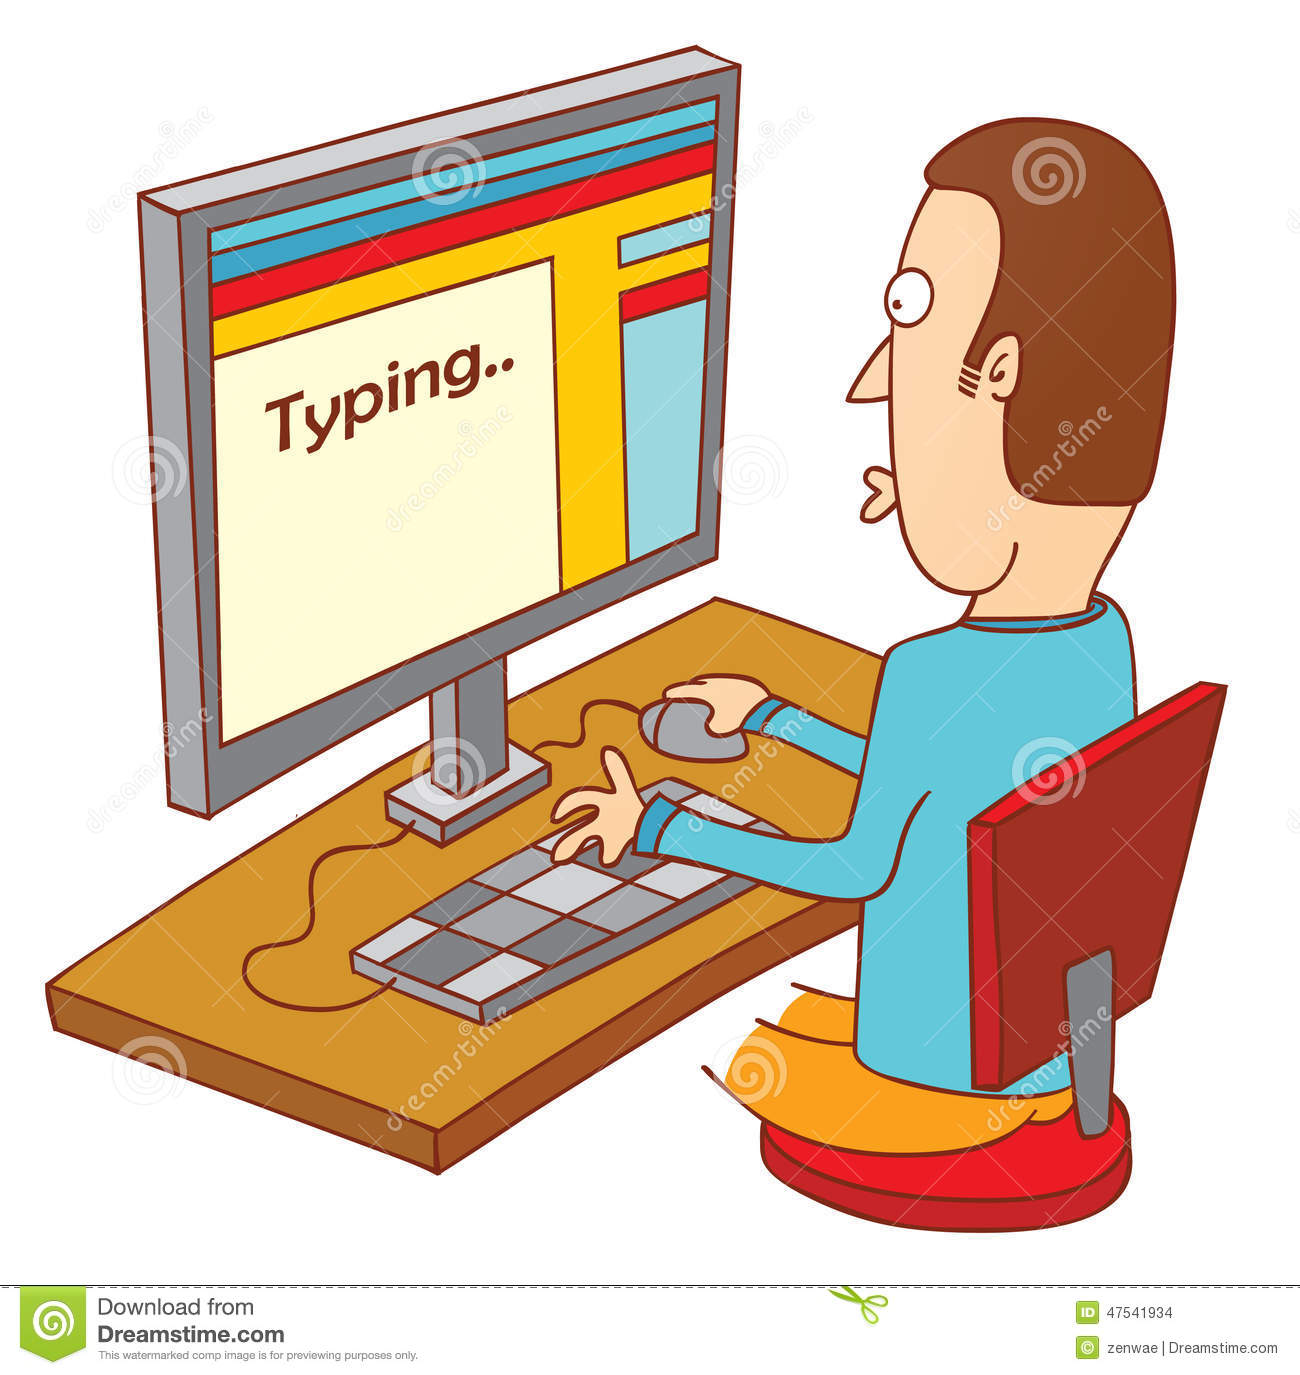 Typing in computer clipart image free download Person typing on computer clipart - ClipartFest image free download